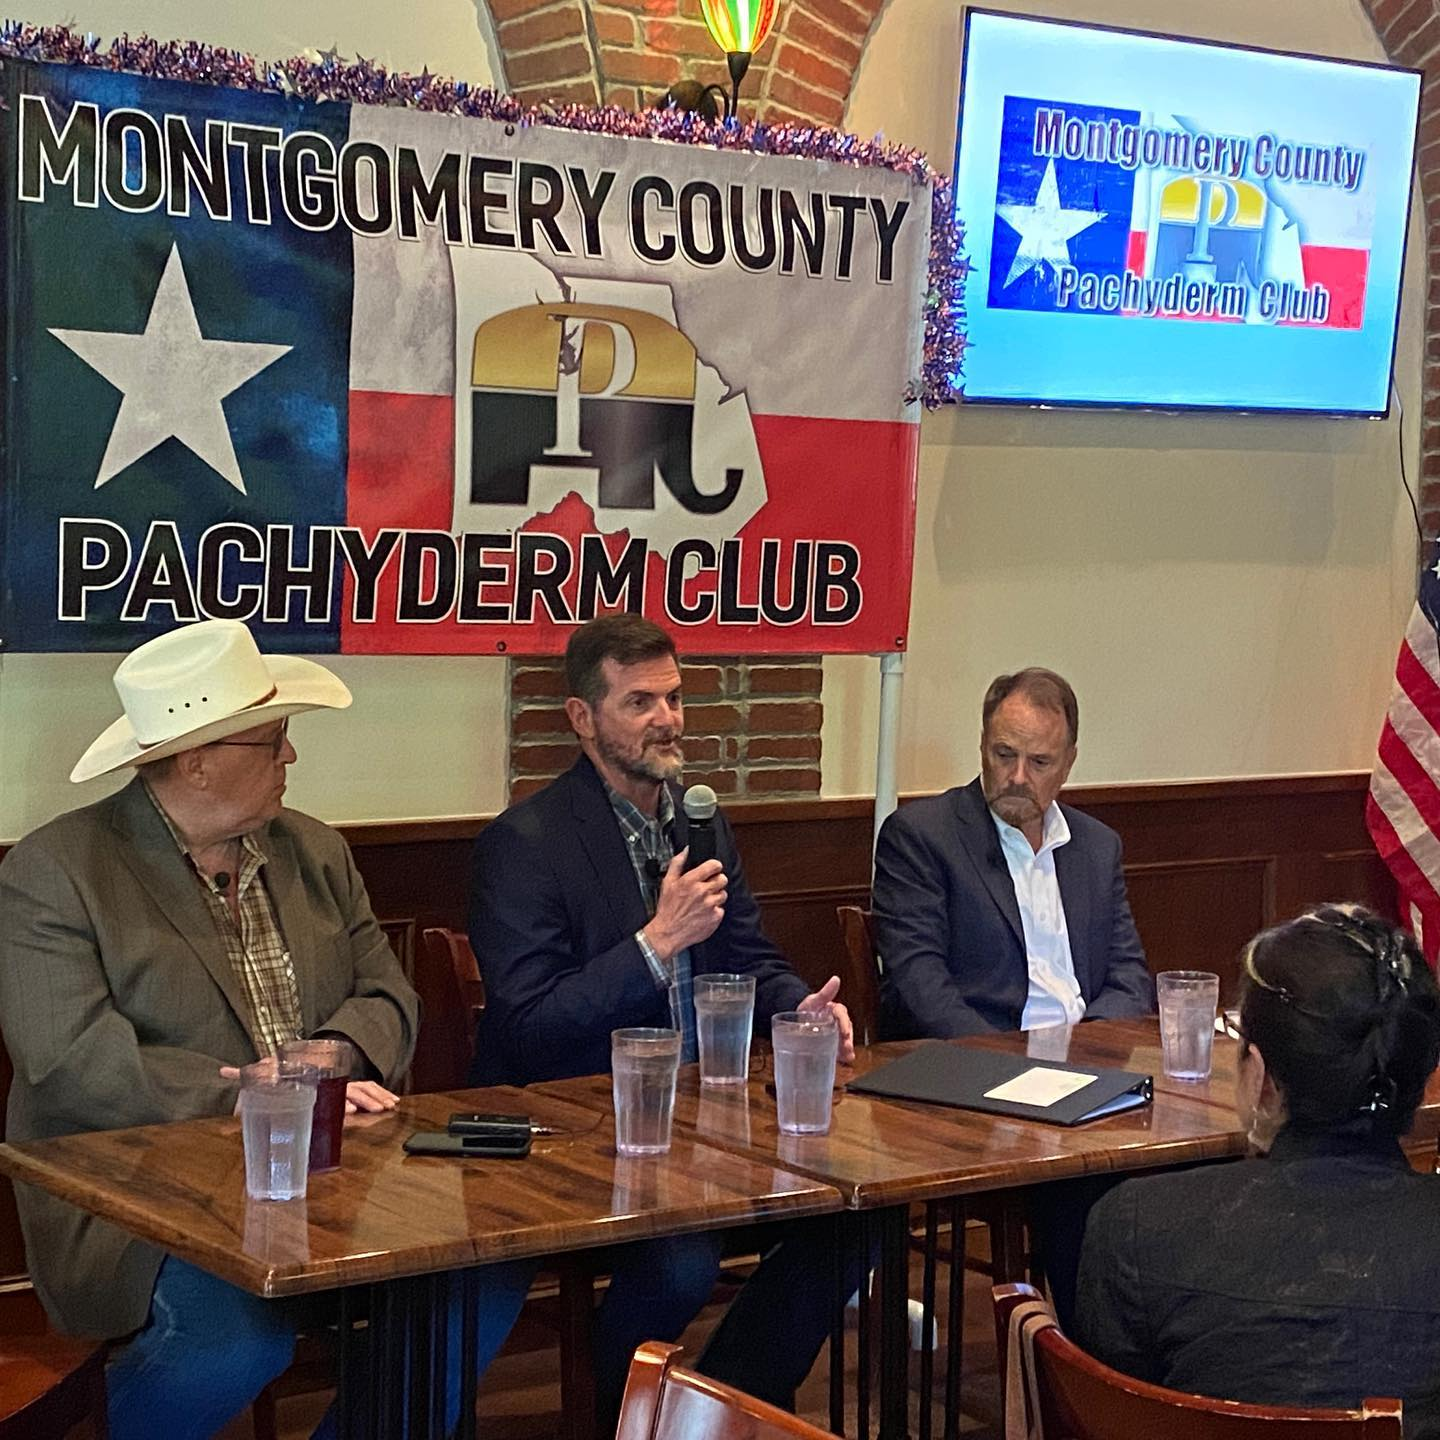 An Evening with the Montgomery County Pachyderm Club